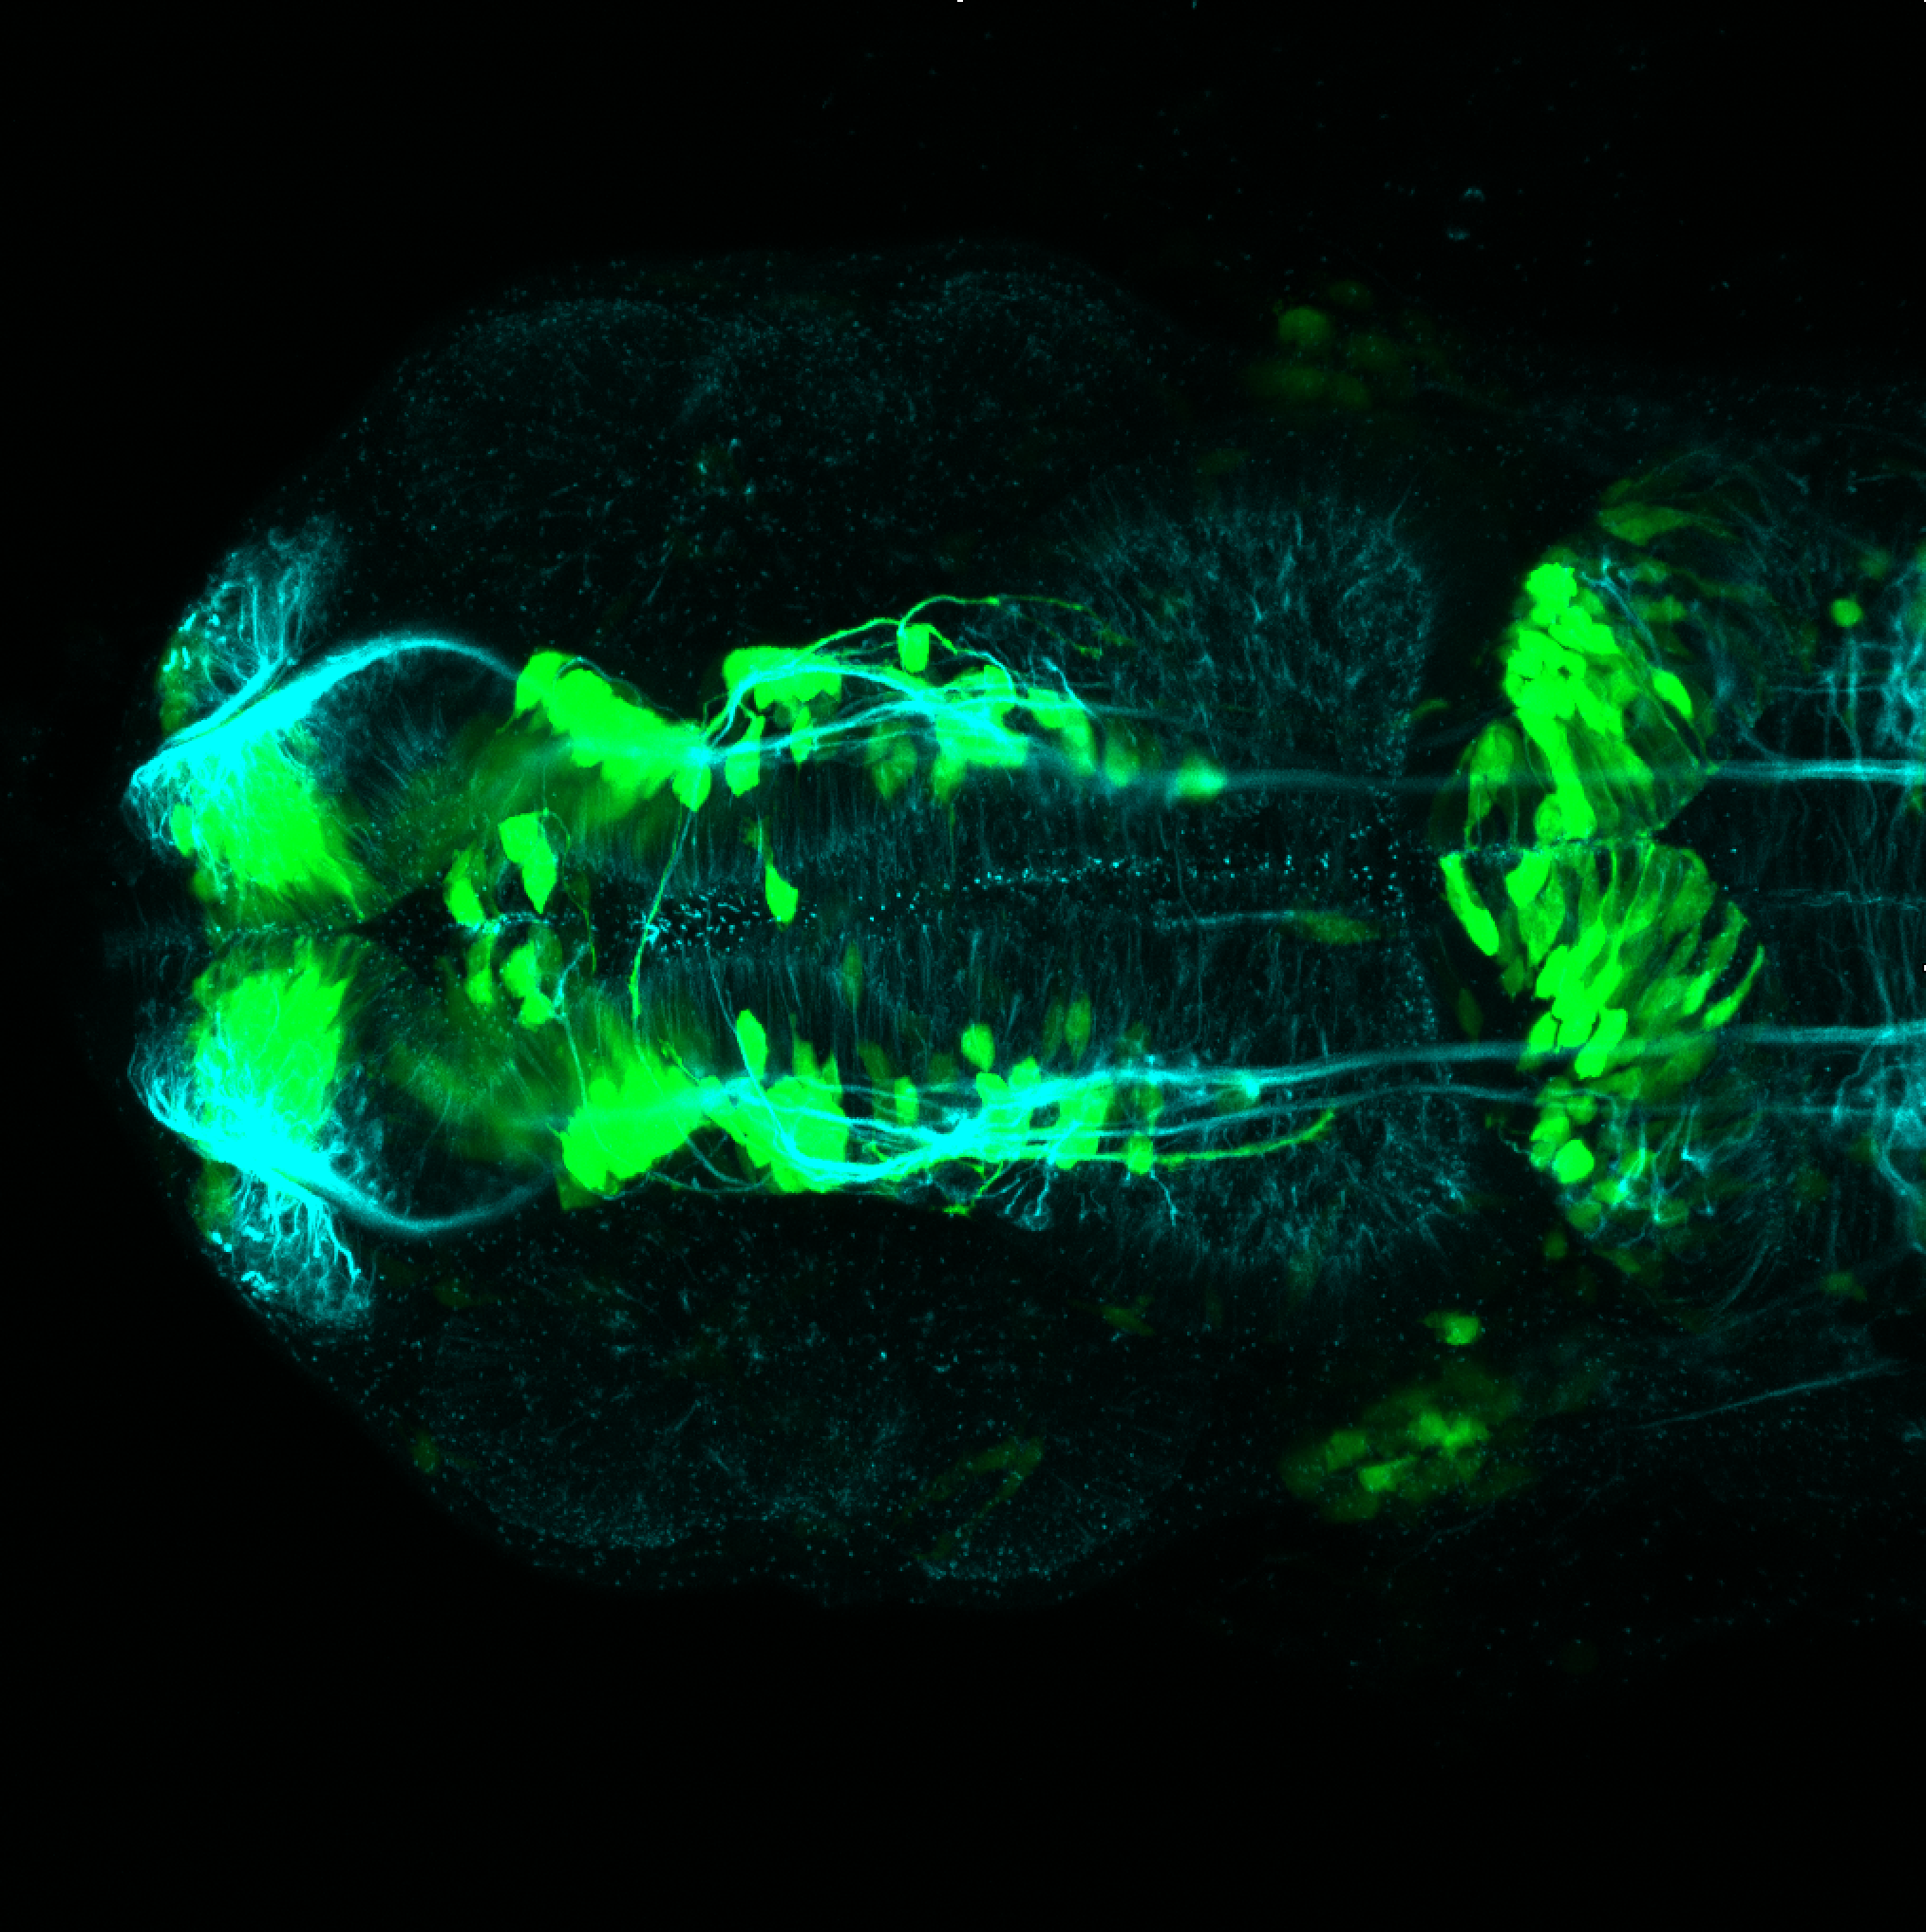 24hpf dorsal view of dlx:GFP with tubulin